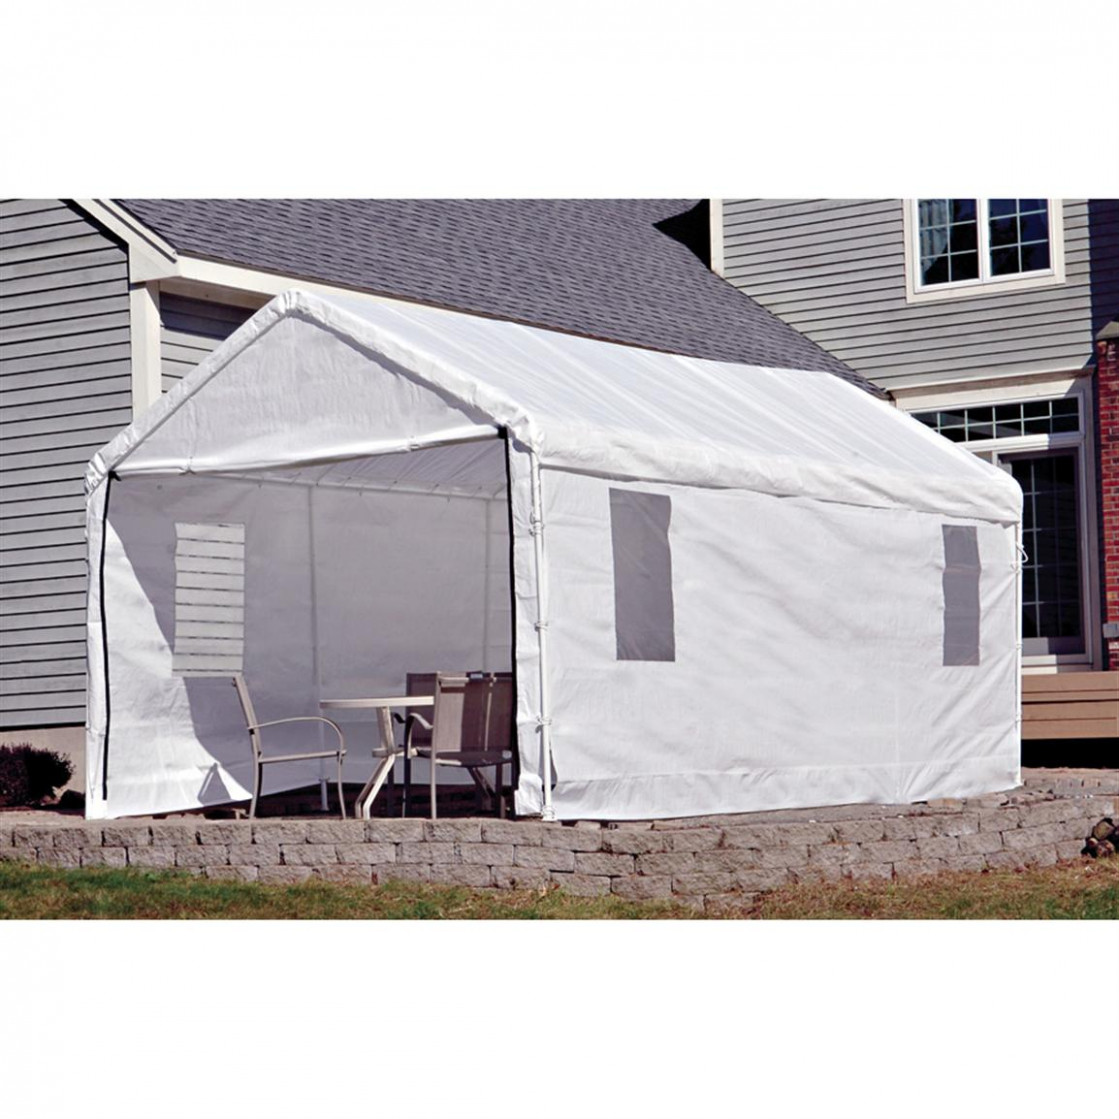 shelterlogic 7×7 canopy carport instructions